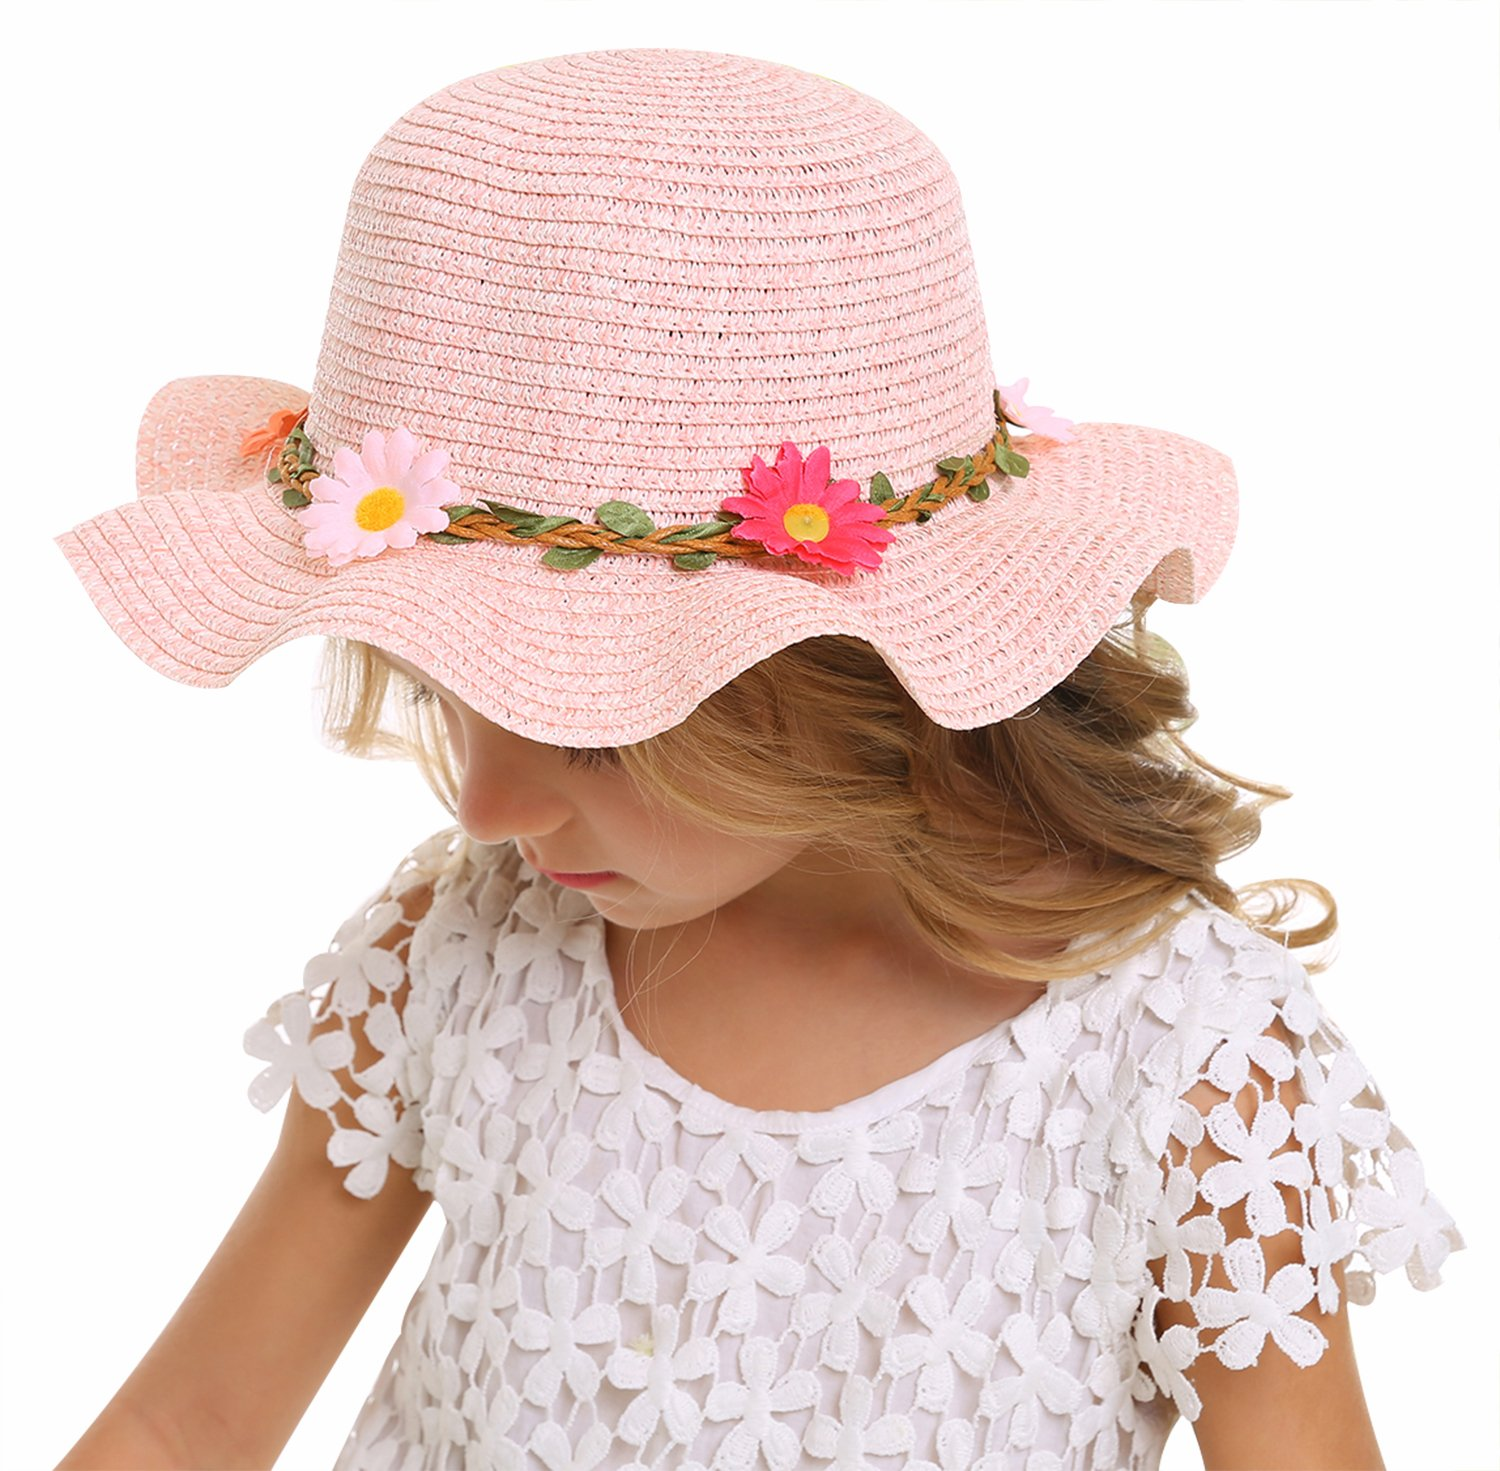 Bienvenu Sun Straw Hat Kids Girls Large Wide Brim Travel Beach Beanie Cap,Pink